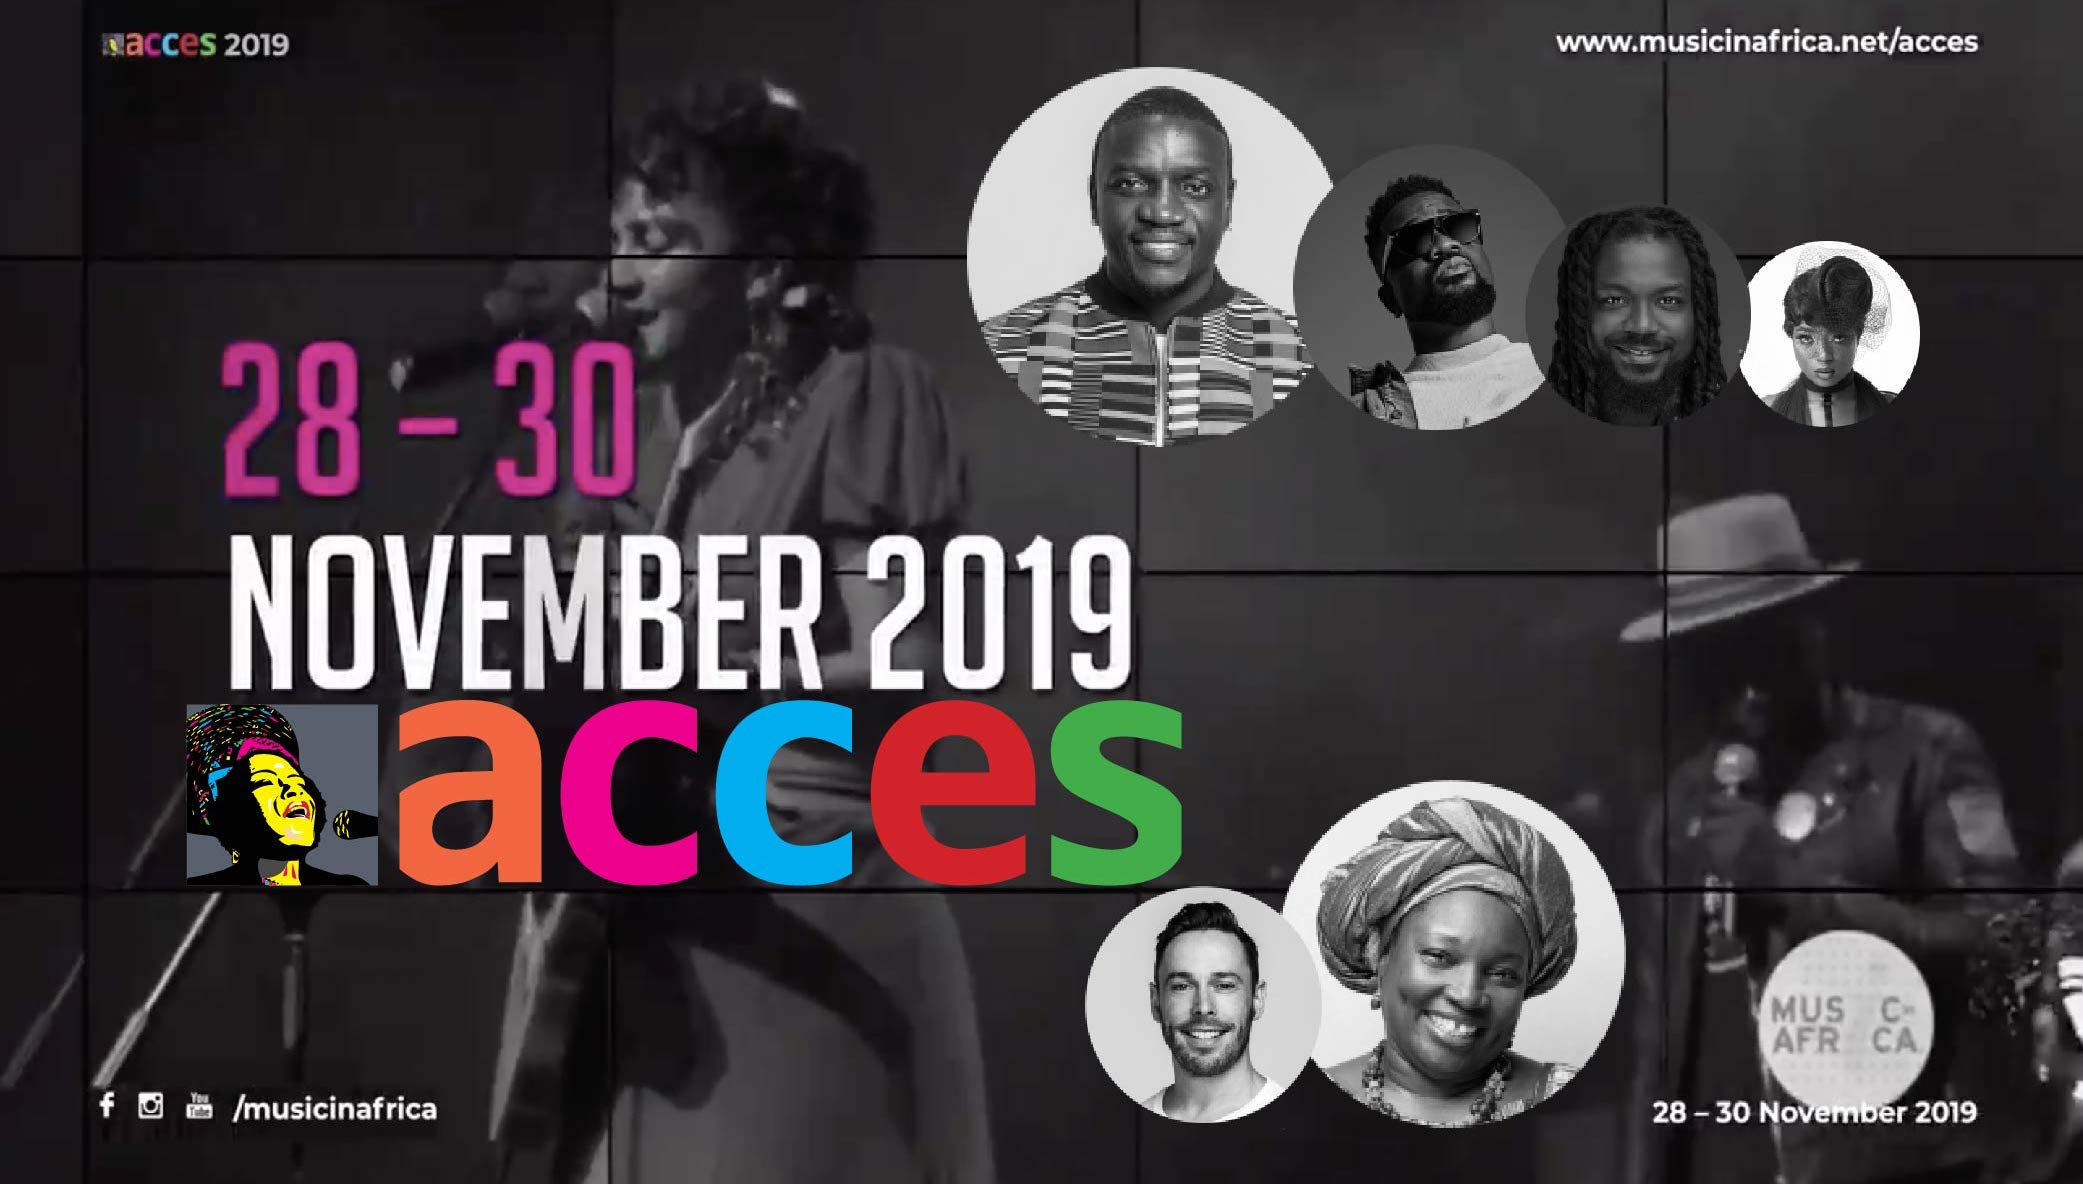 ACCES: A melting pot of global musicians and industry experts